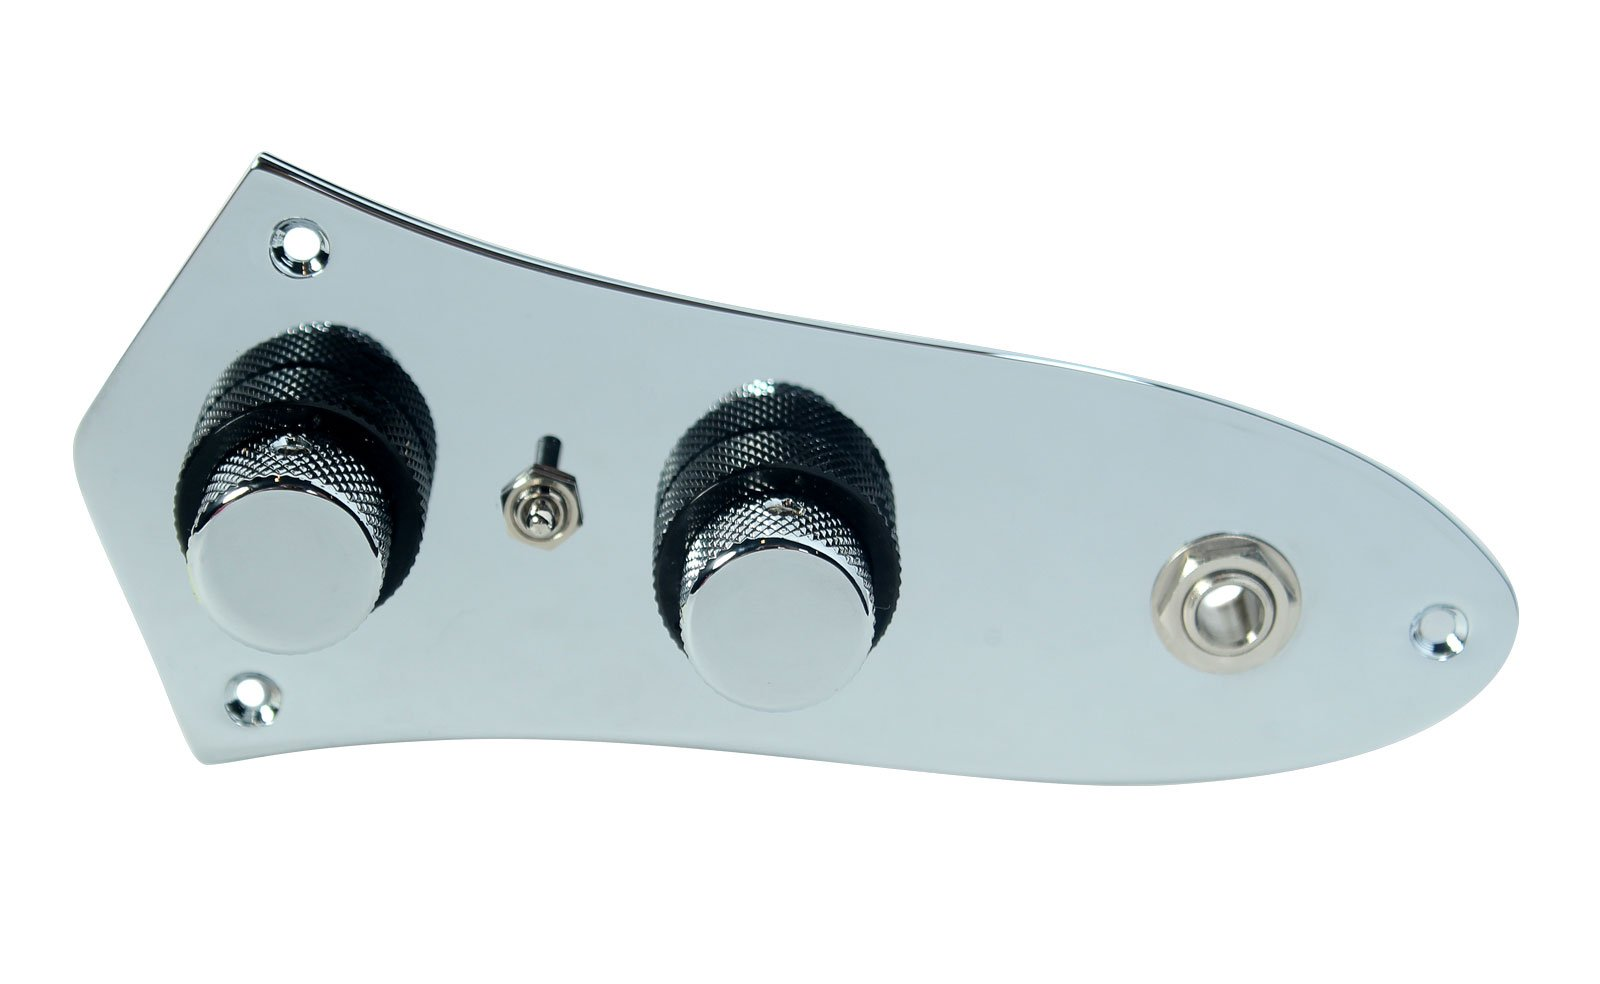 920D Fender '62 Jazz Bass Guitar Loaded Concentric Control Plate CHR/BK + Toggle by Custom Shop